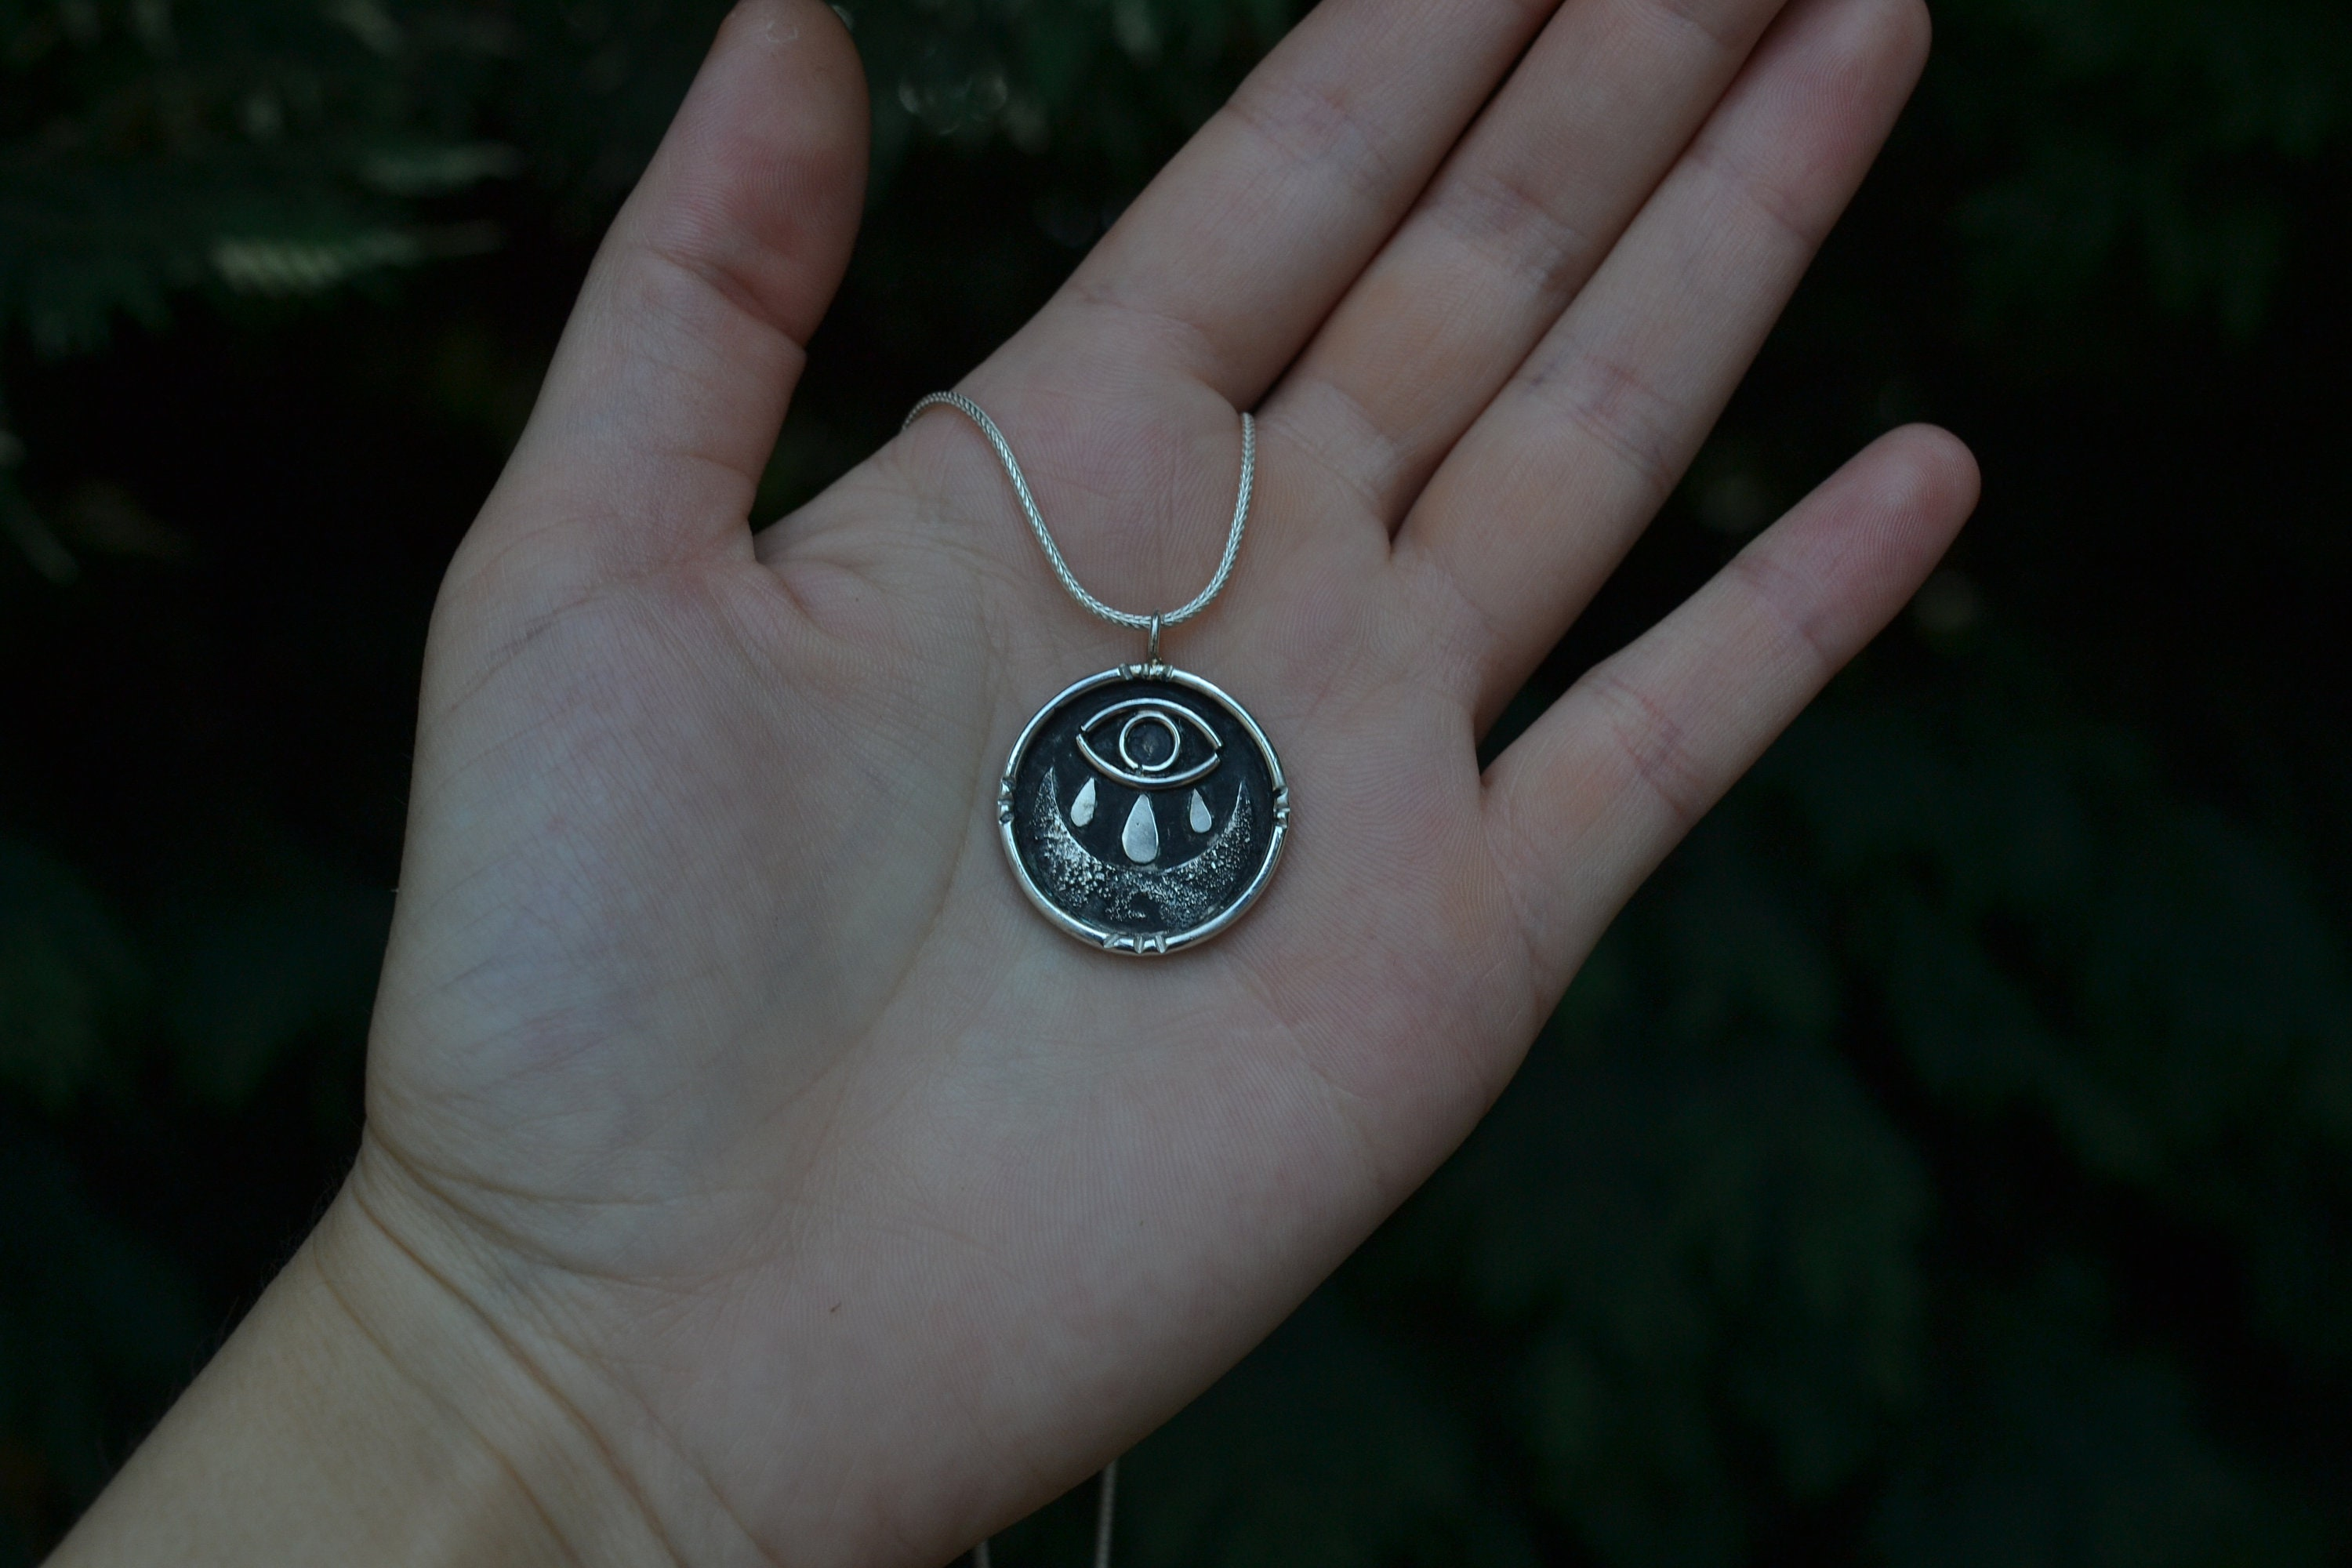 eye and crescent moon necklace crying eye traditional tattoo